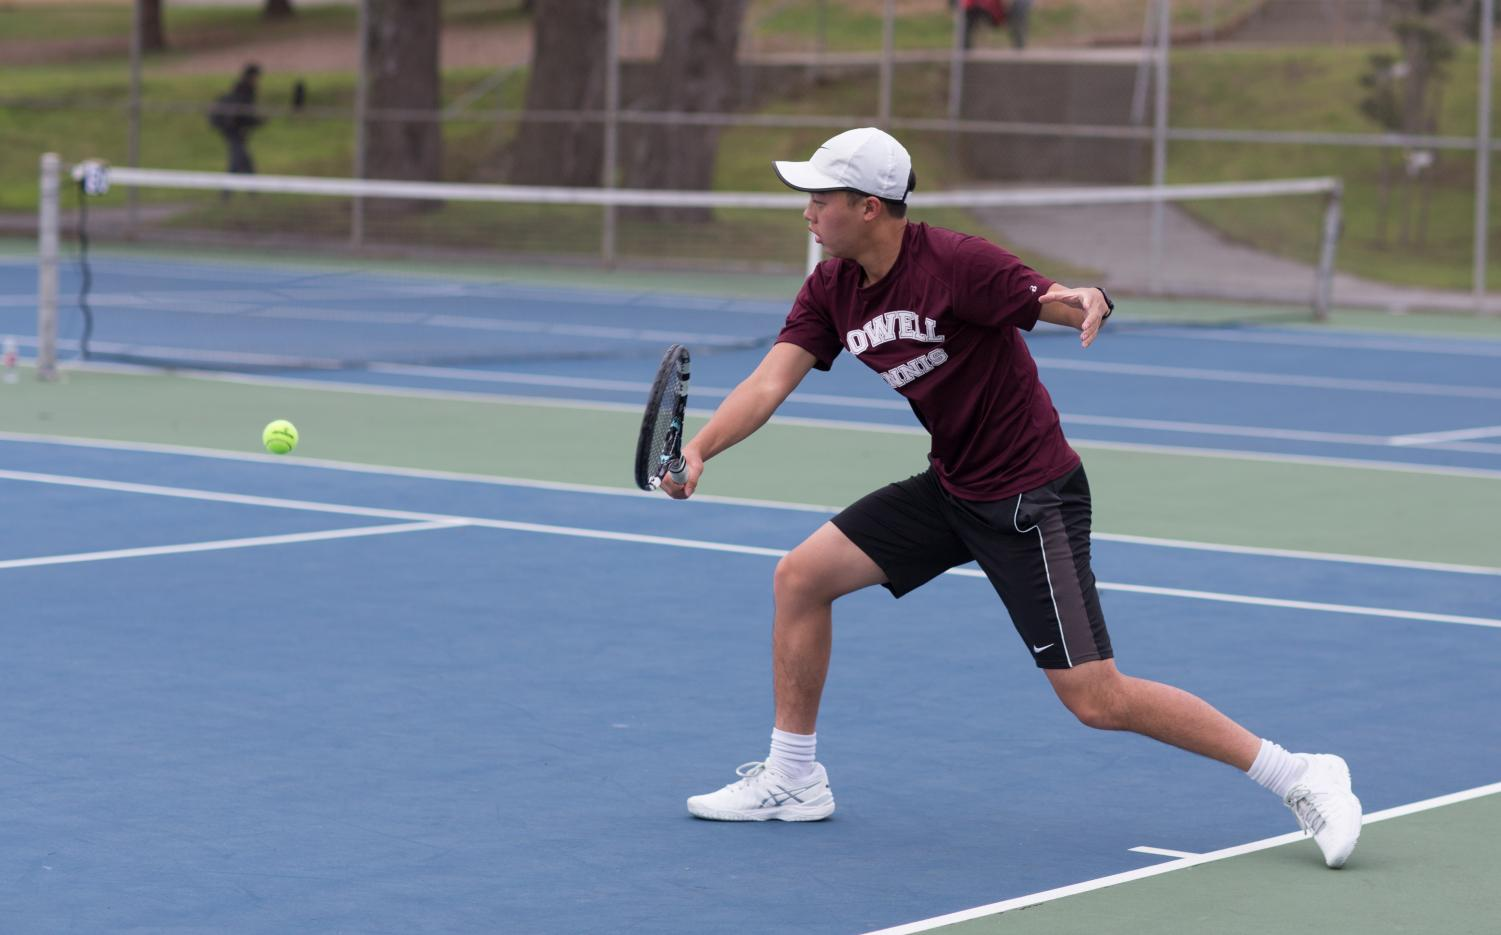 Senior Andrew Trinh, who won his doubles matches against the Archbishop Riordan Crusaders on April 5 at home, performs a backhand shot.